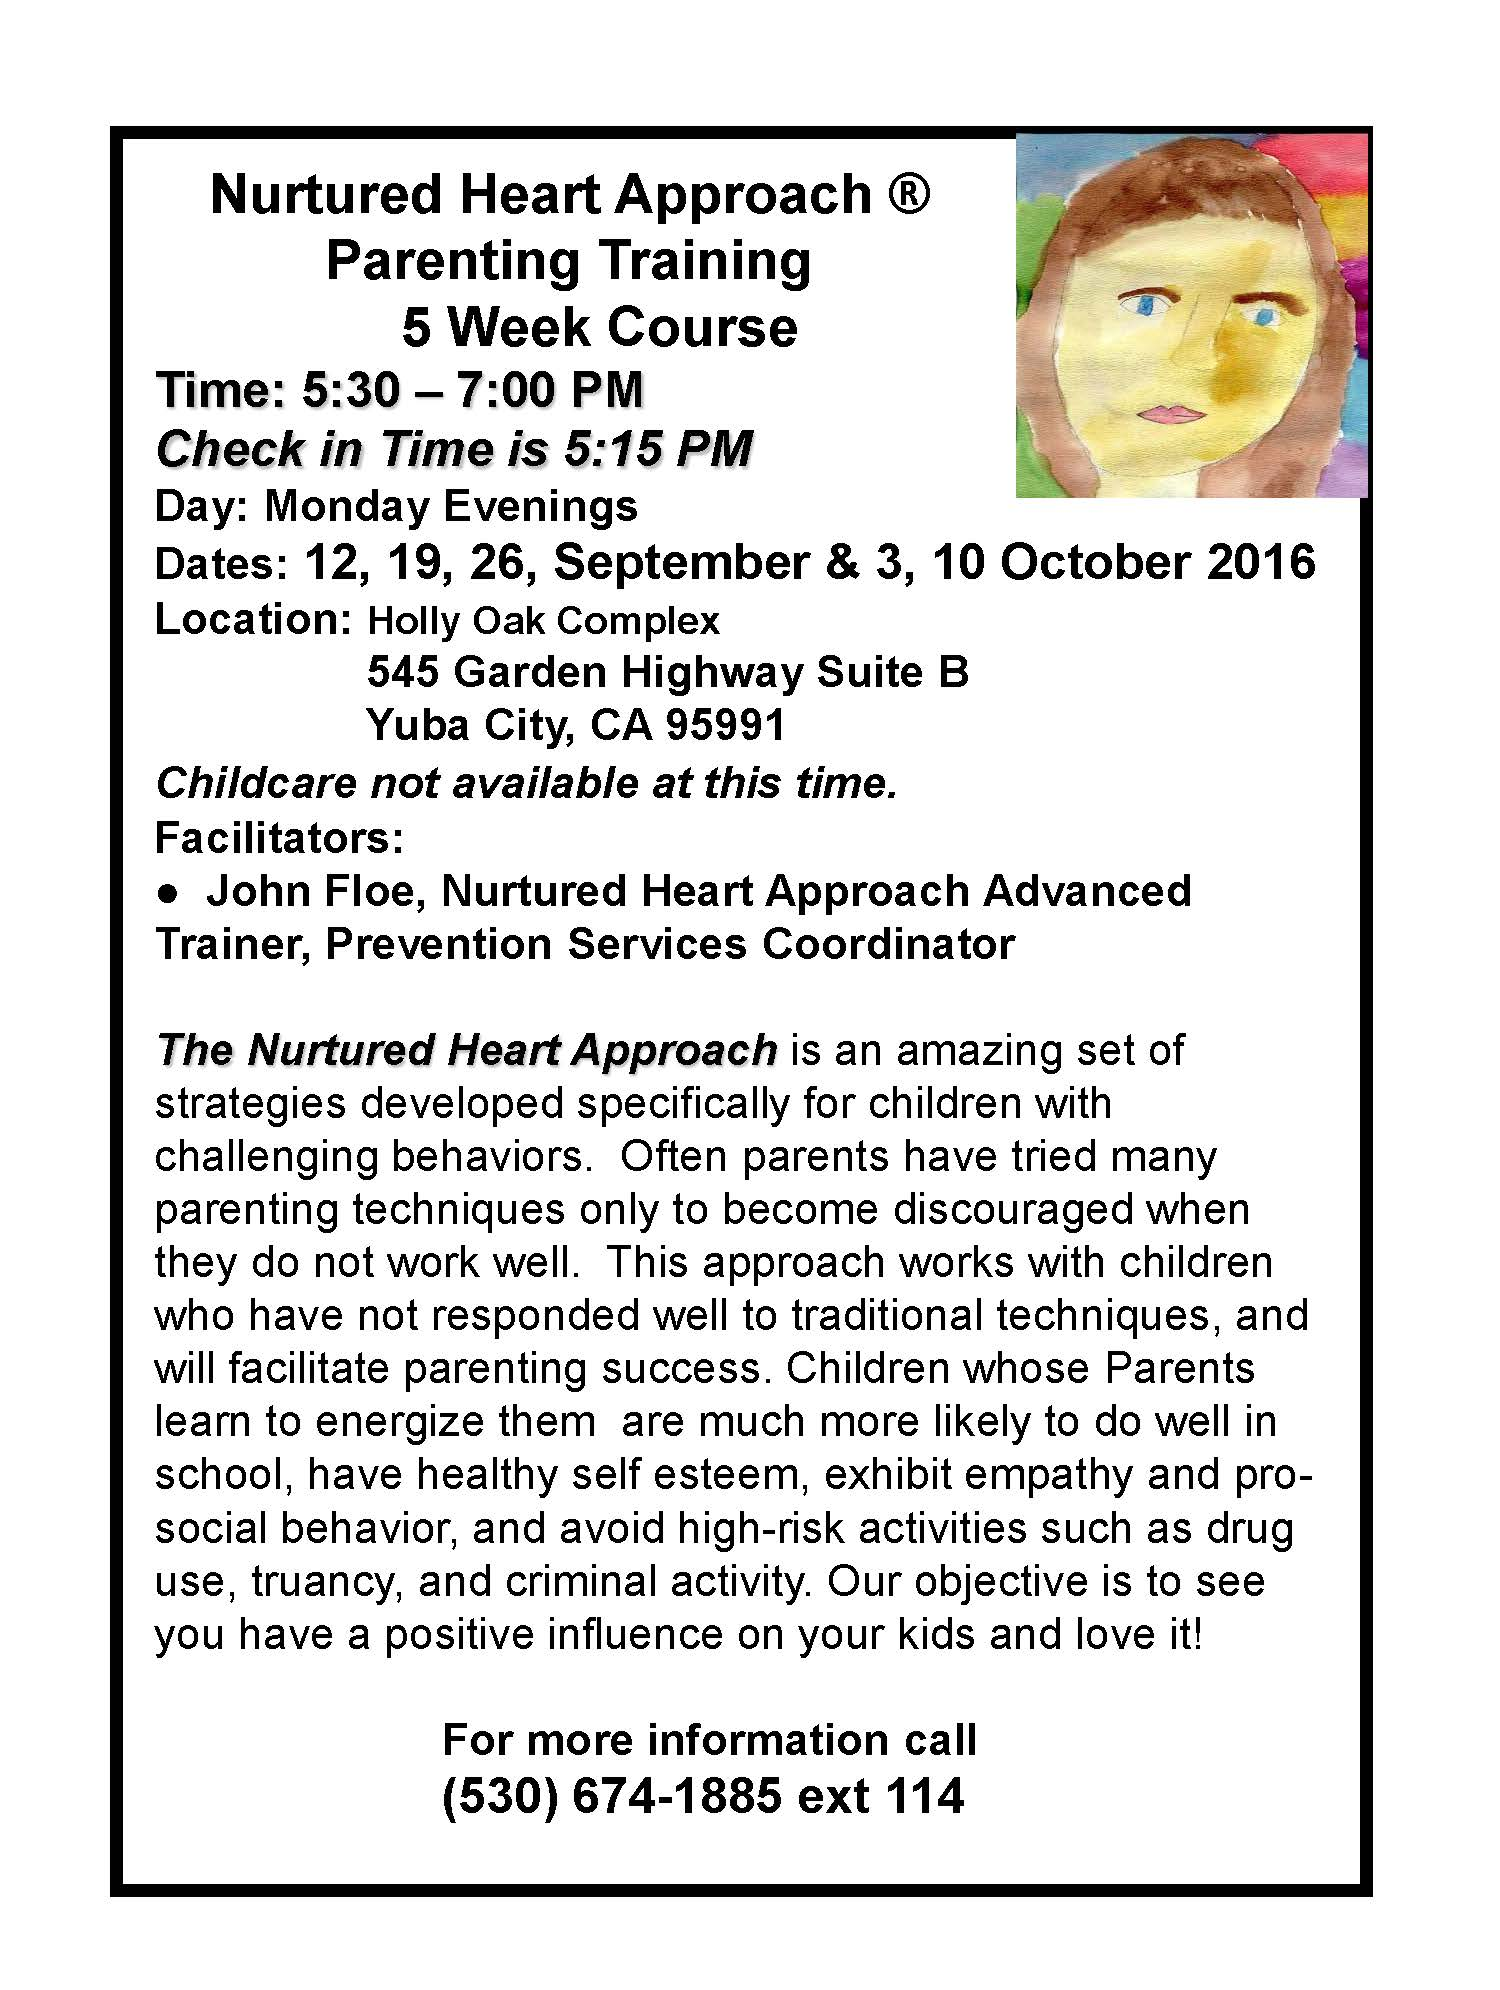 Parents NHA Training Flyer  Referral Form September - October 2016